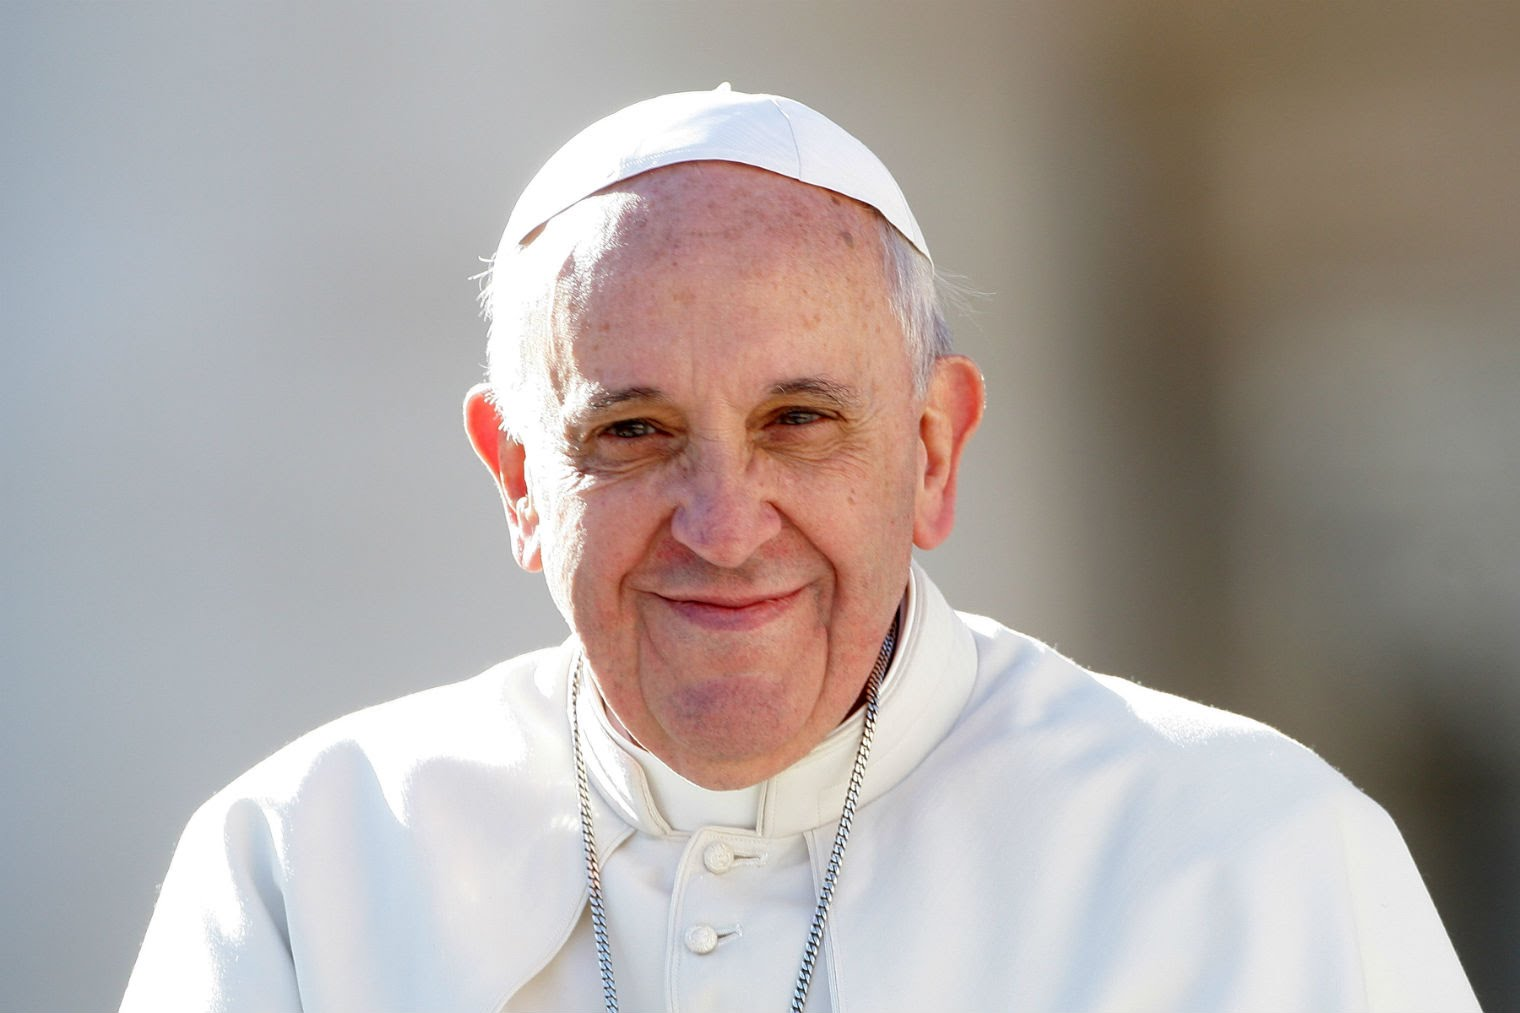 Current pope on homosexuality